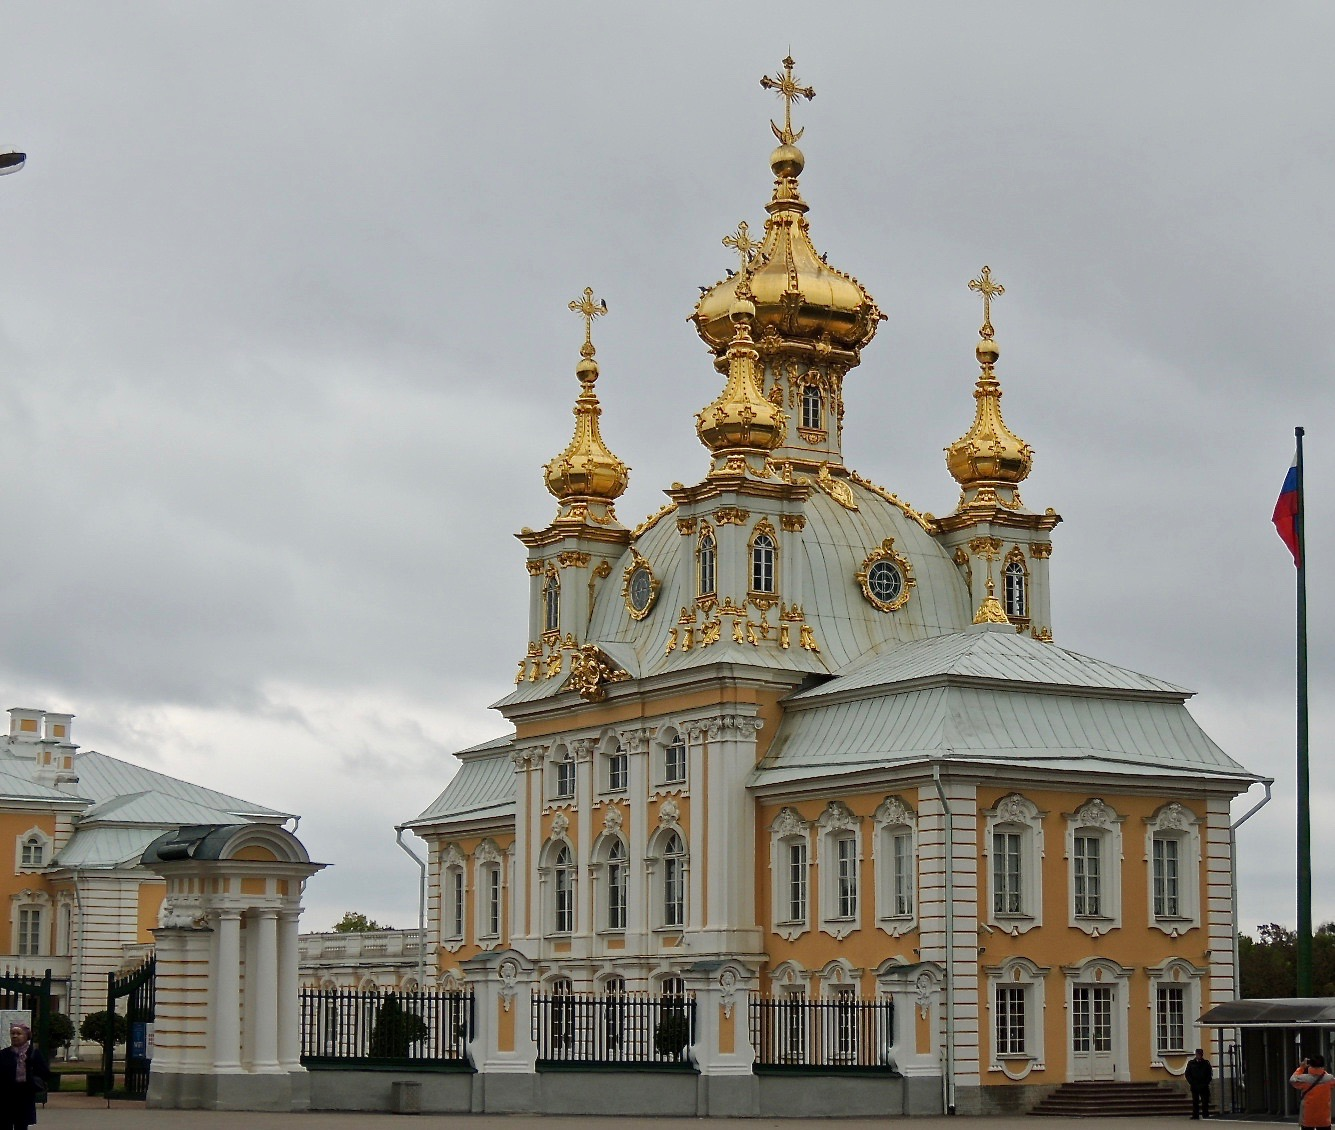 Peterhof, the Russian Versailles